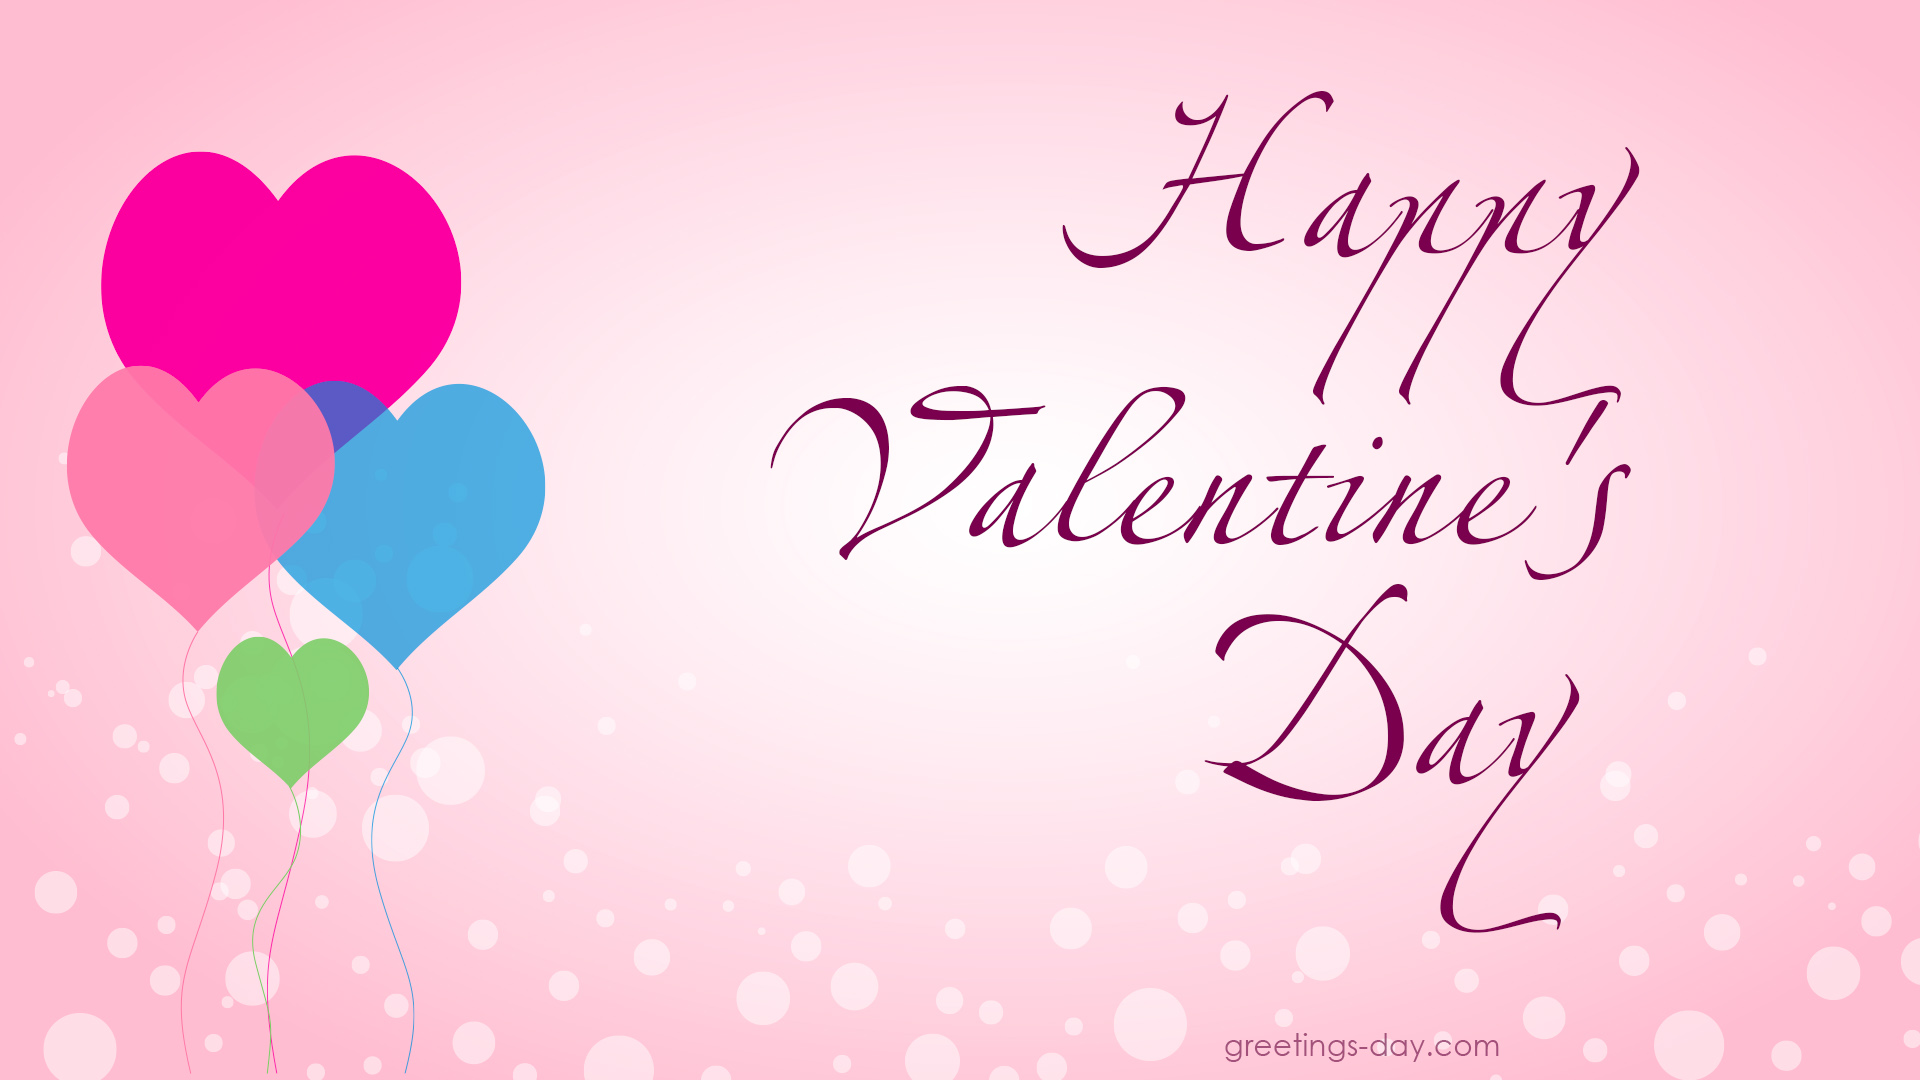 Valentines day for boyfriend for girlfriend for her cards for valentines day for boyfriend for girlfriend for her cards for facebook greetings valentines day nice hearts images quotes sayings pinterest m4hsunfo Images